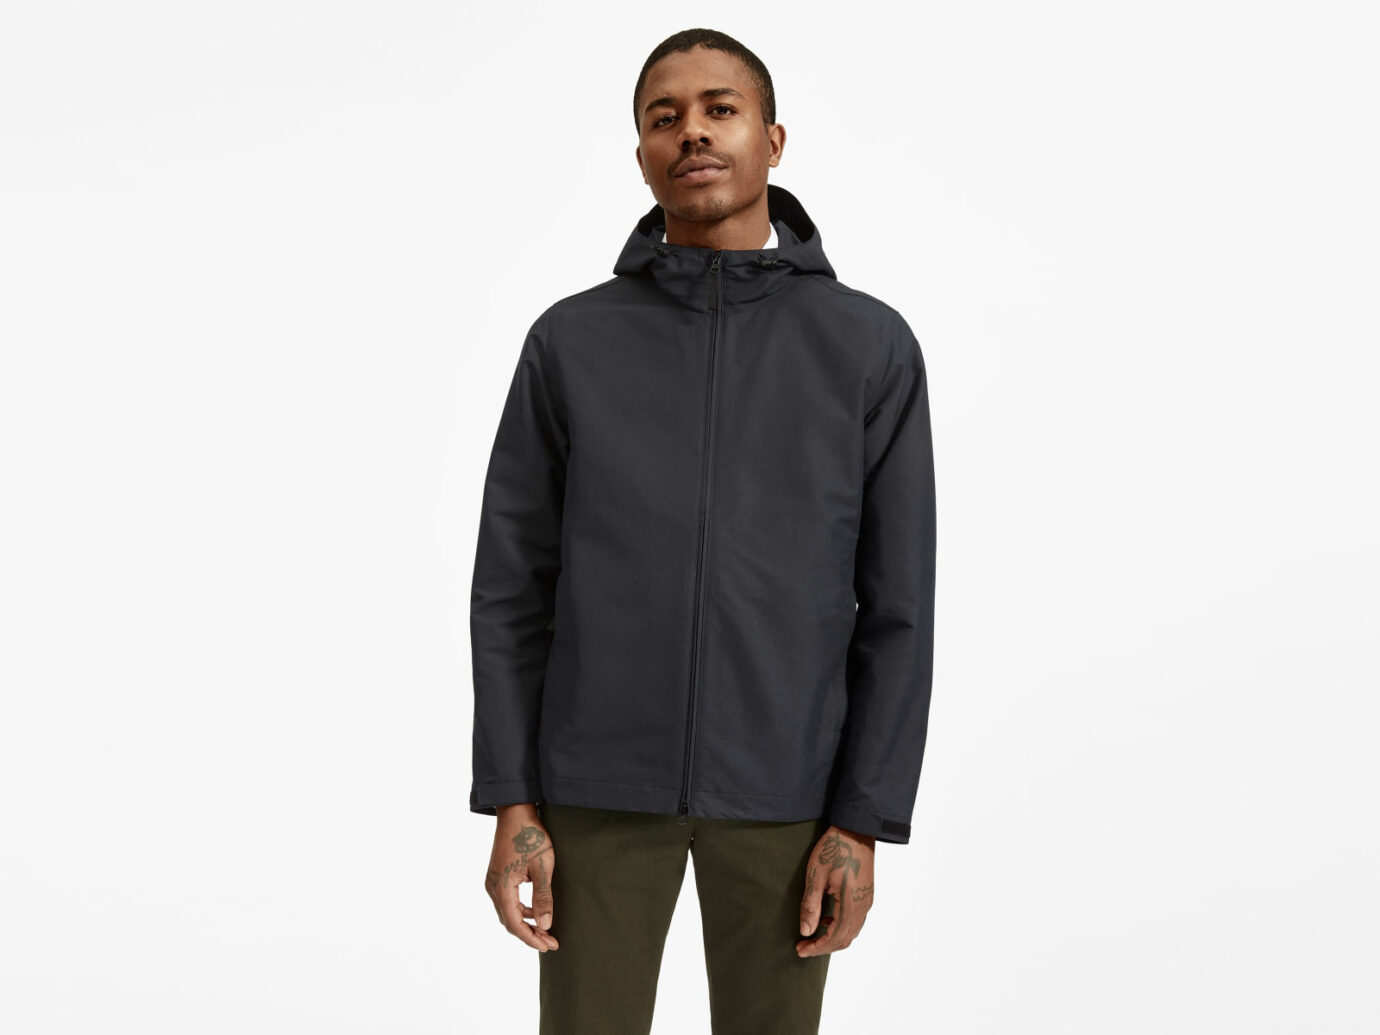 The ReNew All-Weather Jacket